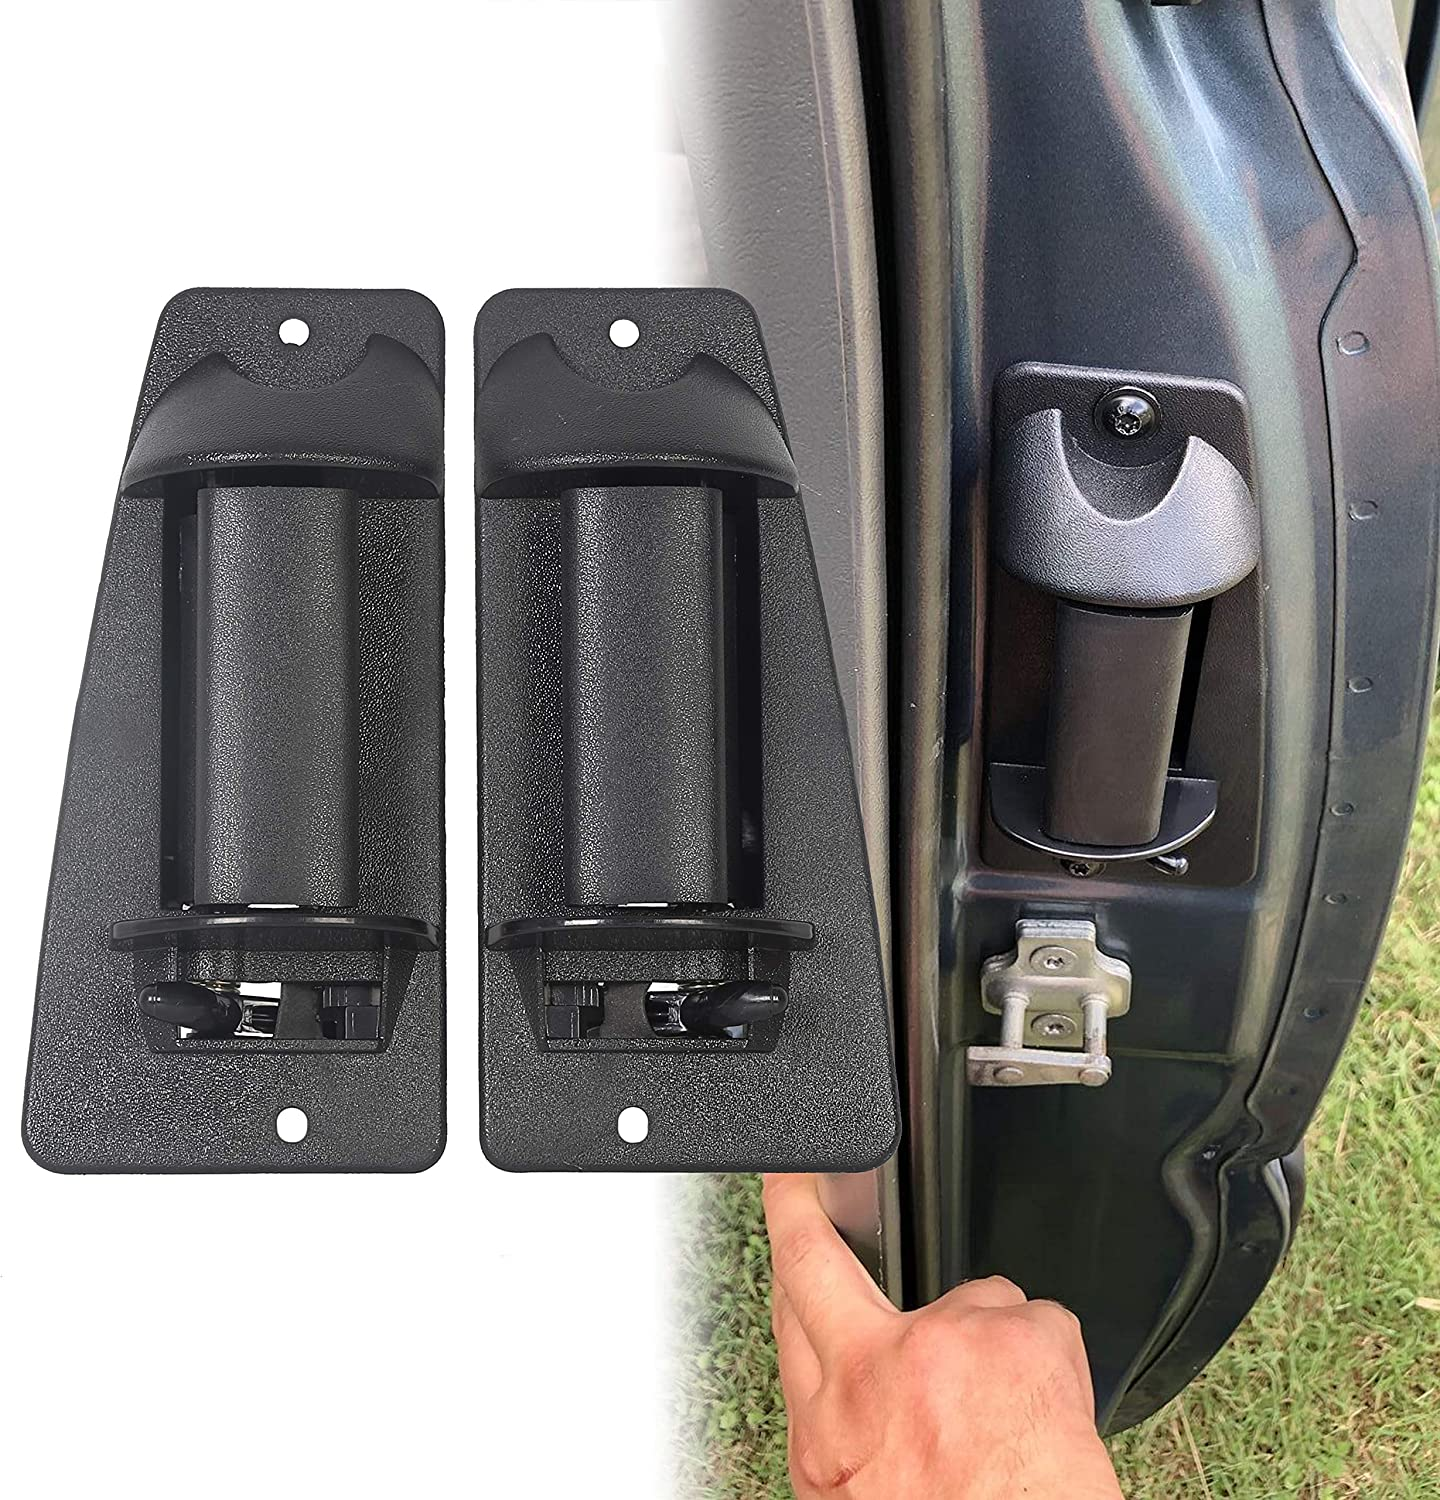 fits Rear Left Driver/'s and Right Passenger/'s Sides of Extended Cab Exterior Outside Outer Door Handle Compatible with 1999-2007 Chevy Silverado and GMC Sierra Part Numbers 15758172 /& 15758171